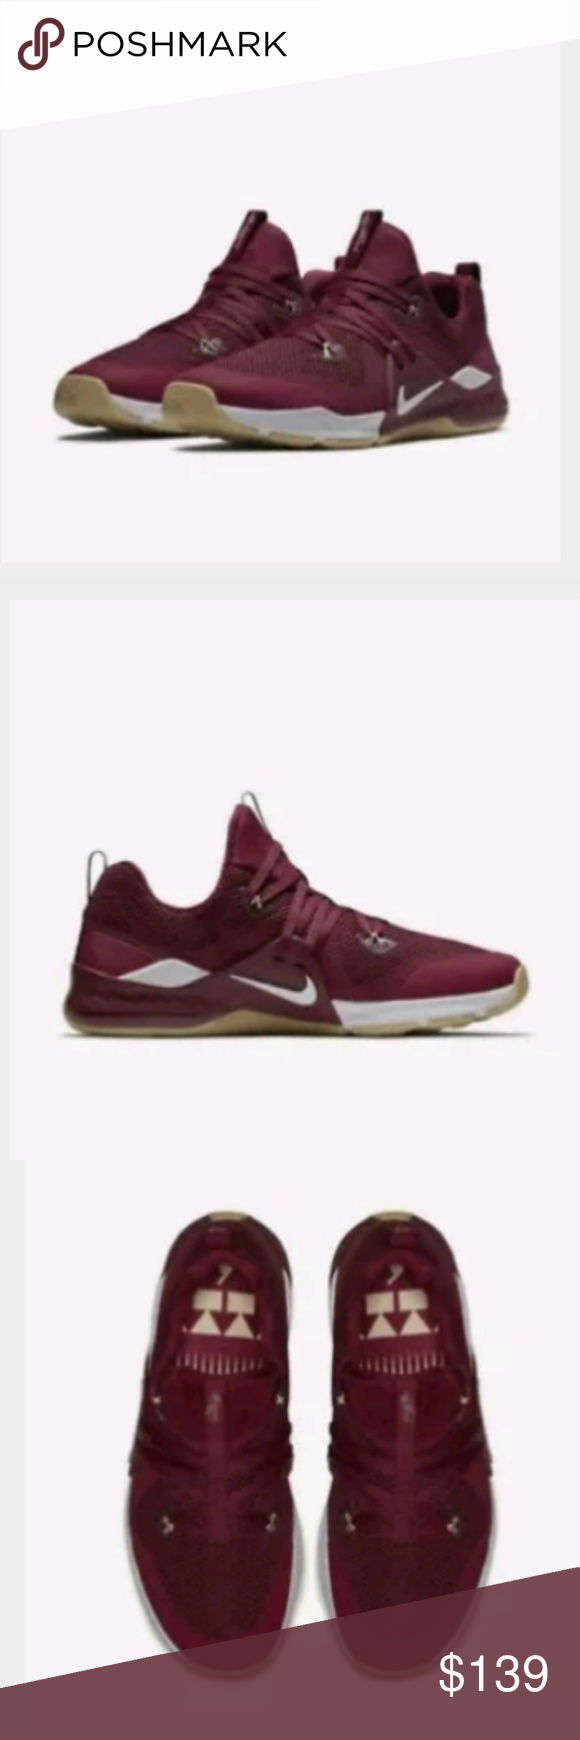 c9670d1930b2 Nike Florida State Seminoles Zoom Shoes 7 Nike Florida State Seminoles Zoom  Train Command College Shoes Nike Shoes Athletic Shoes